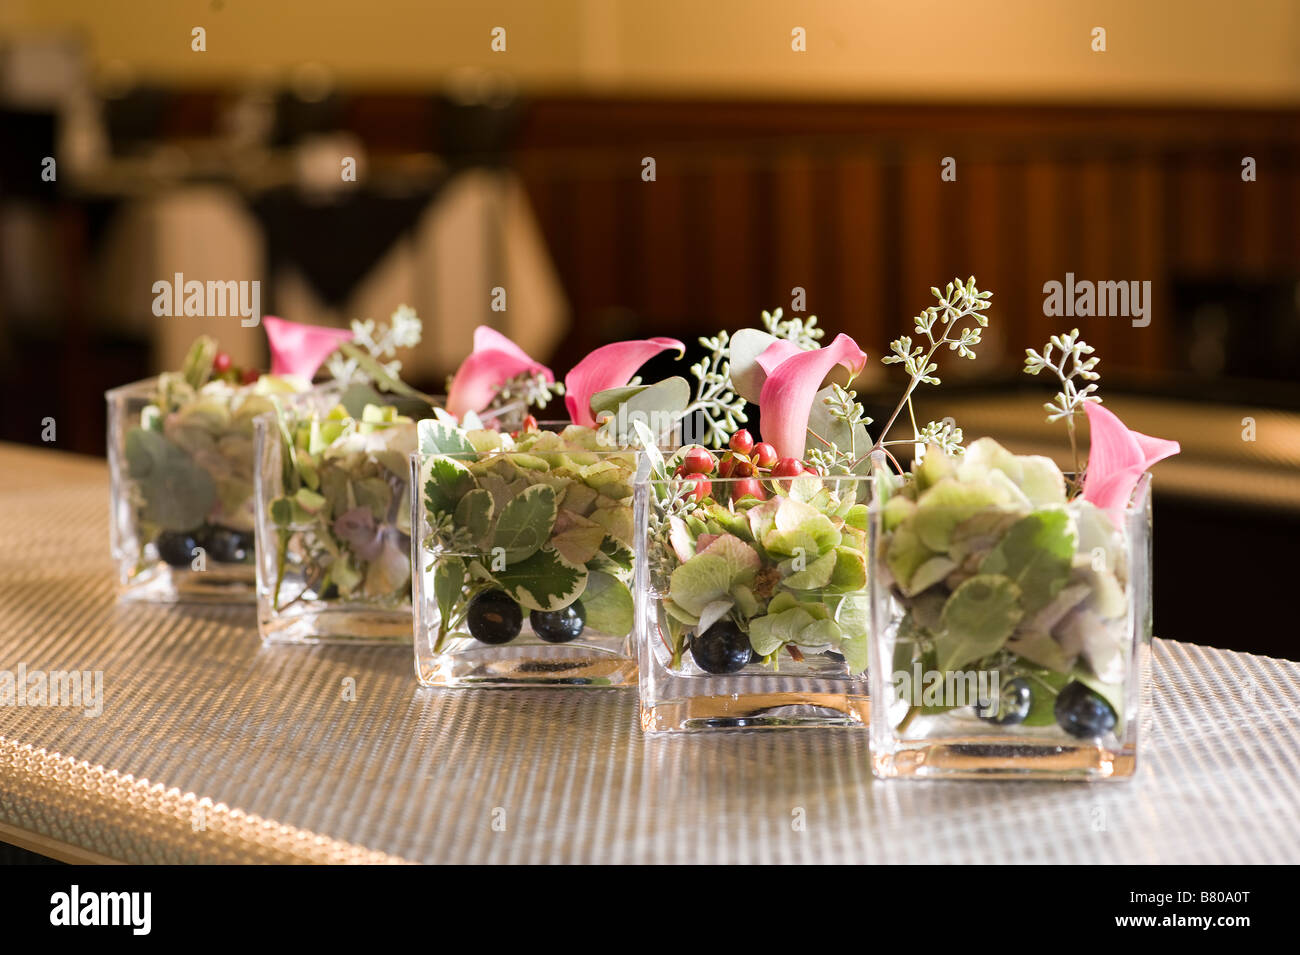 Small glass vases holding a beautiful floral arrangement stock small glass vases holding a beautiful floral arrangement reviewsmspy